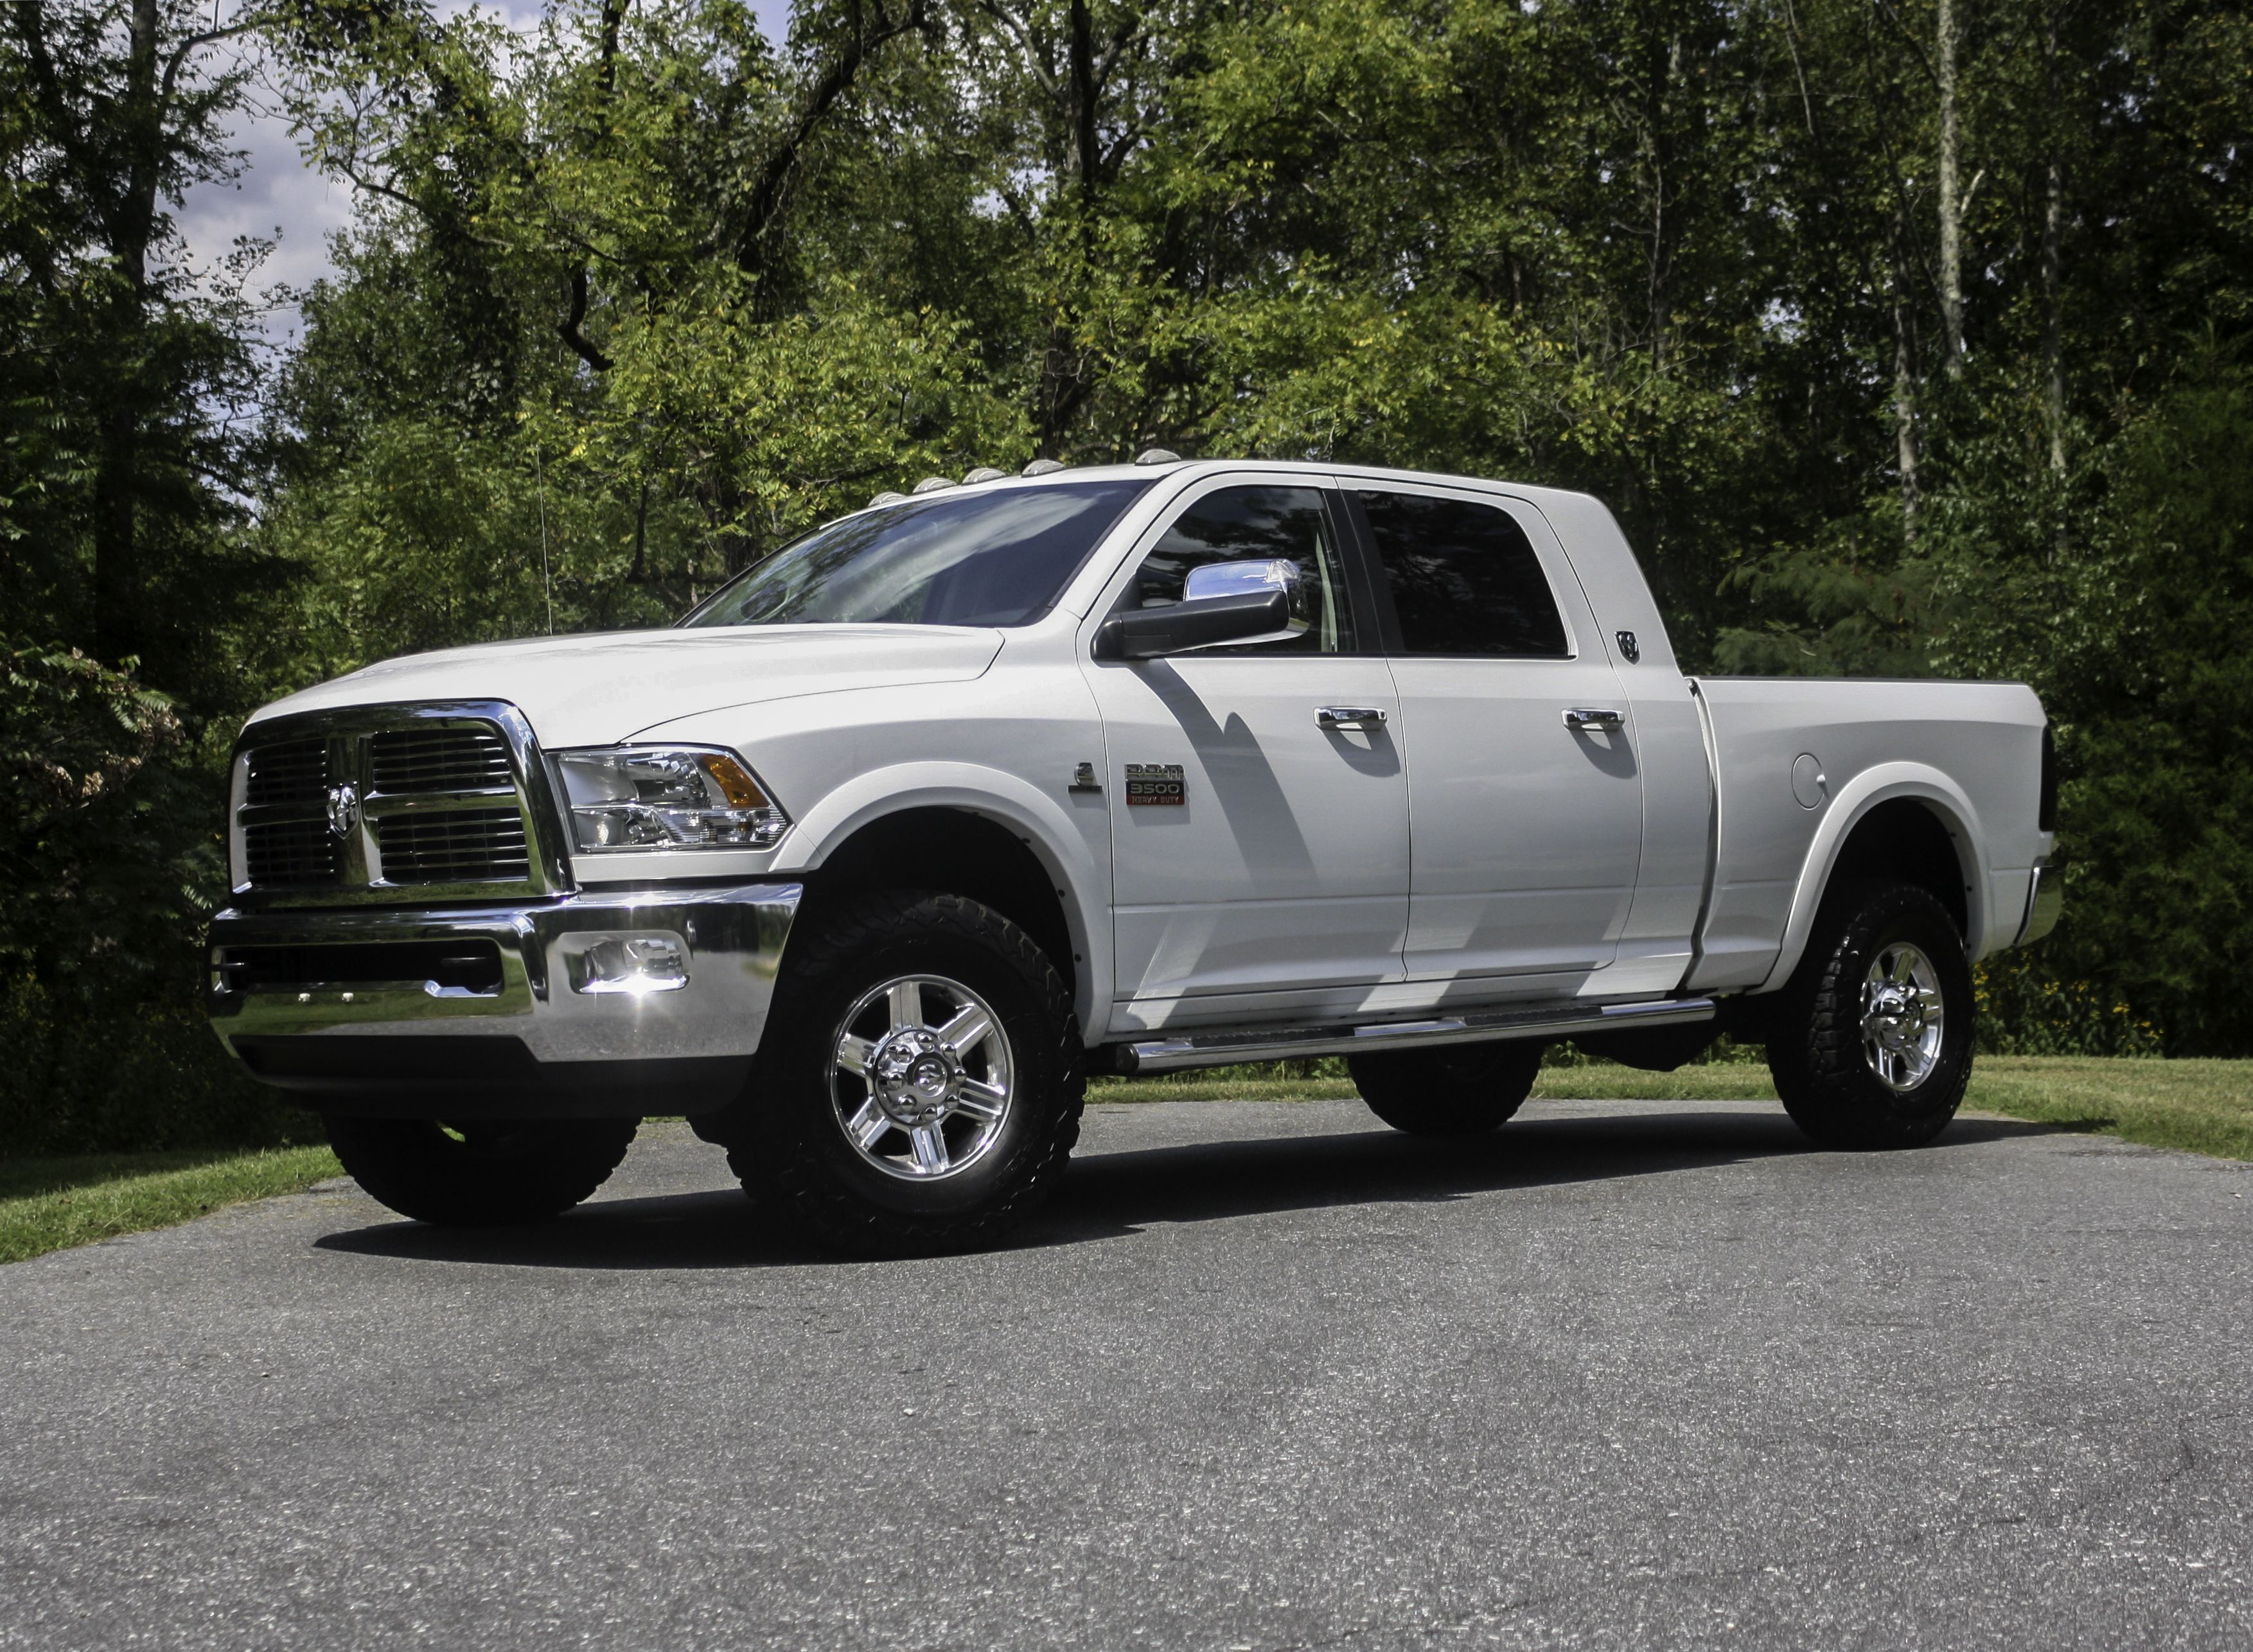 This 2011Ram3500 Laramie would be an excellent addition